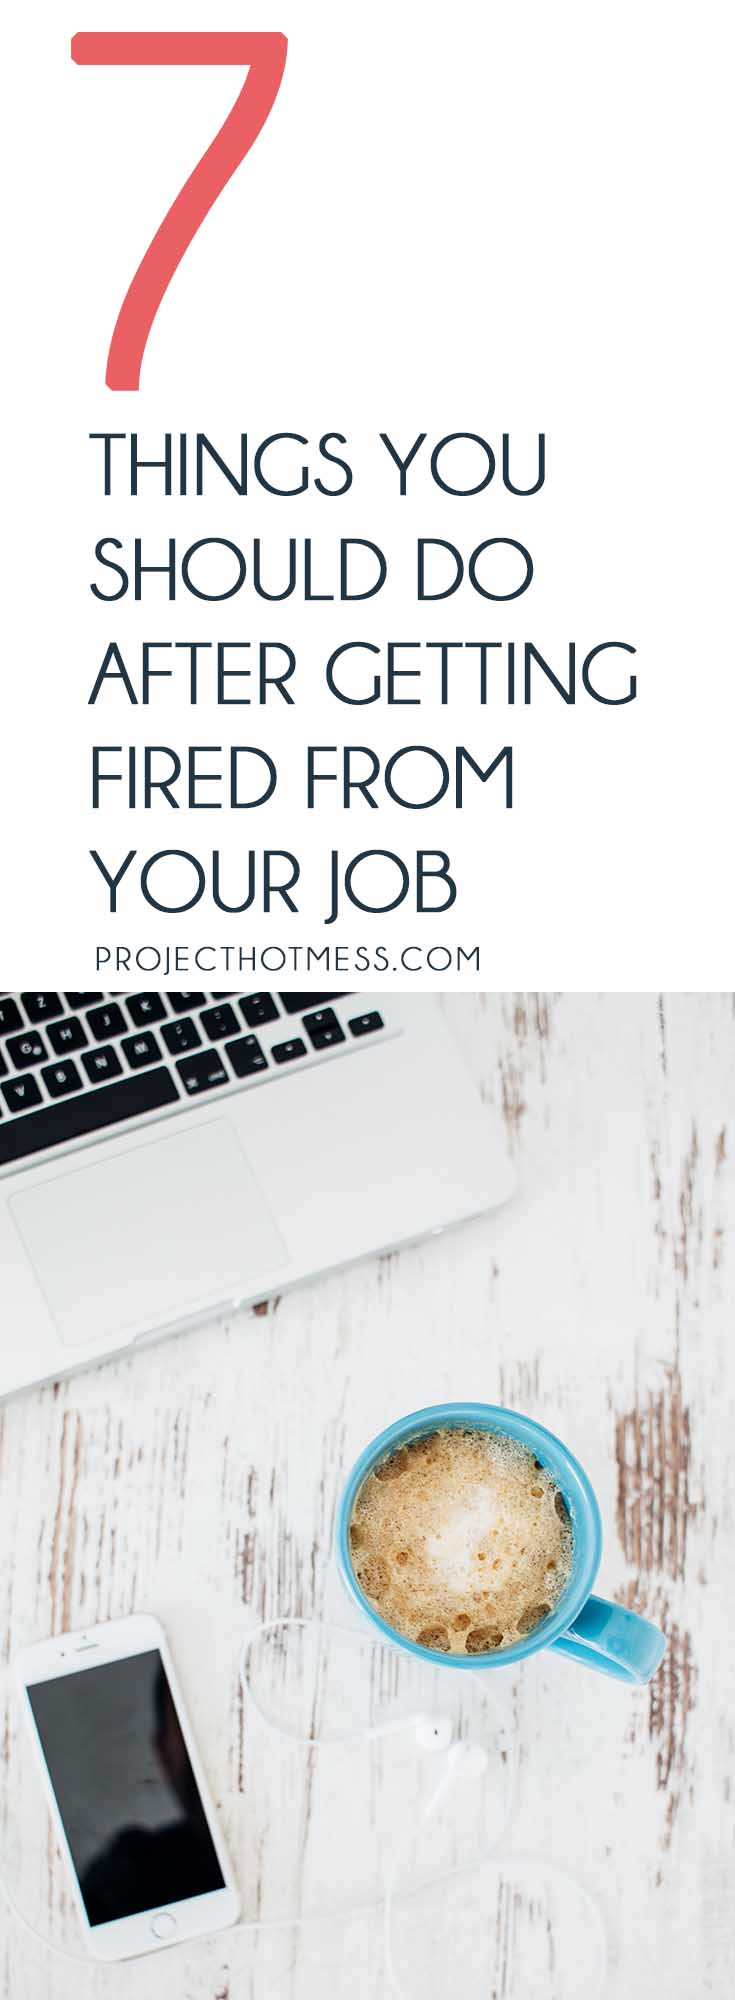 Getting fired from work can be frustrating, scary and can leave you feeling unsure of what to do next. Use these tips to help you get back in the game. #career #careerwoman #gettingfired